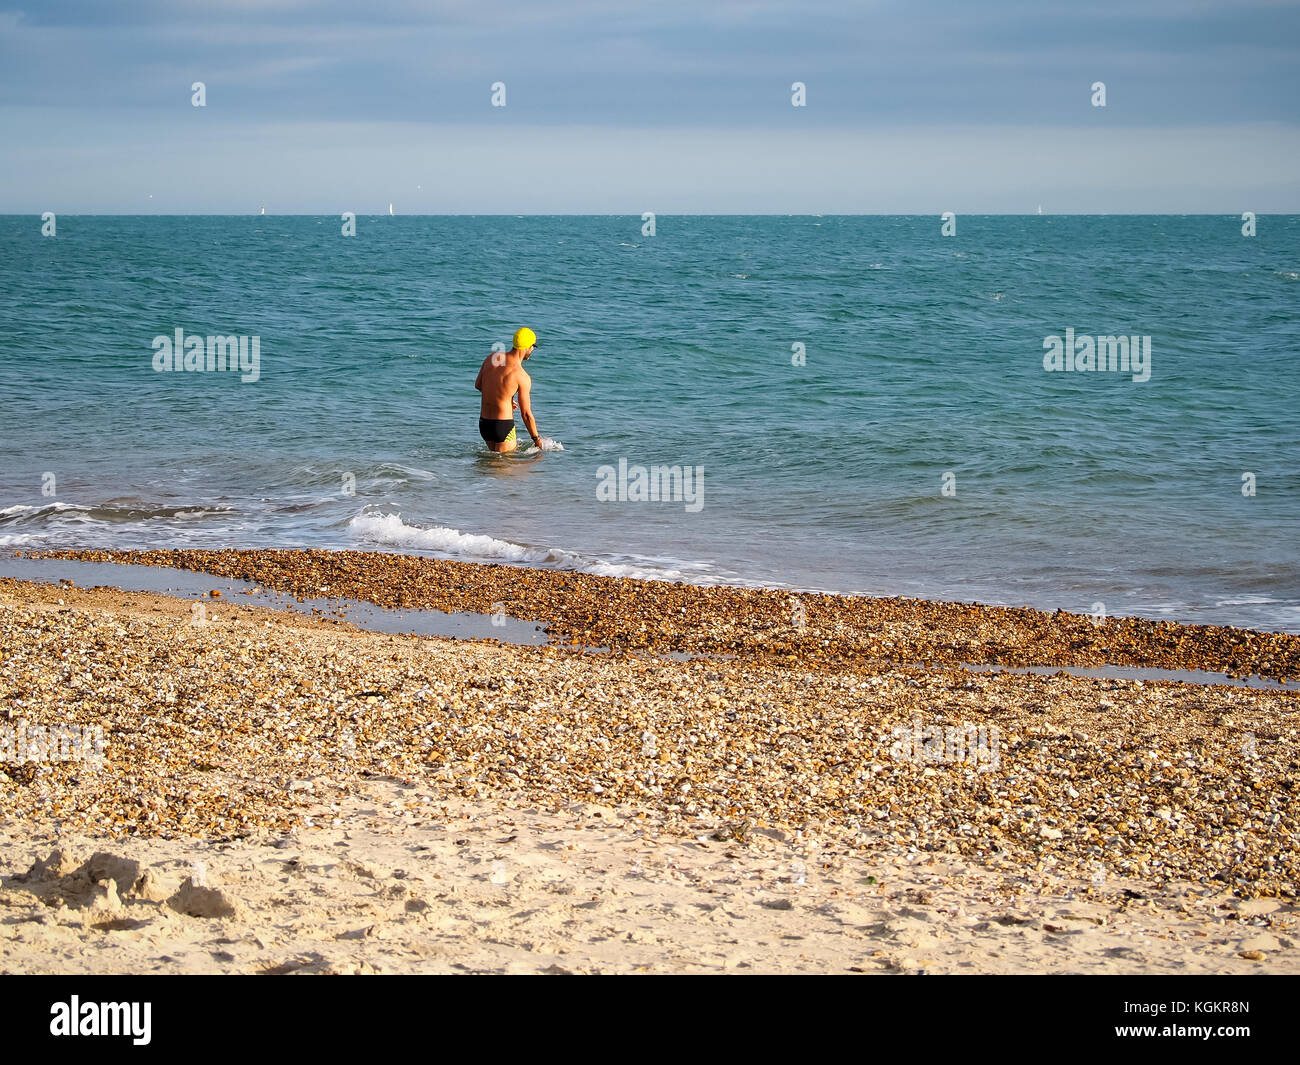 A man wearing swimming trunks and swim hat wades into the solent in an Autmn day - Stock Image